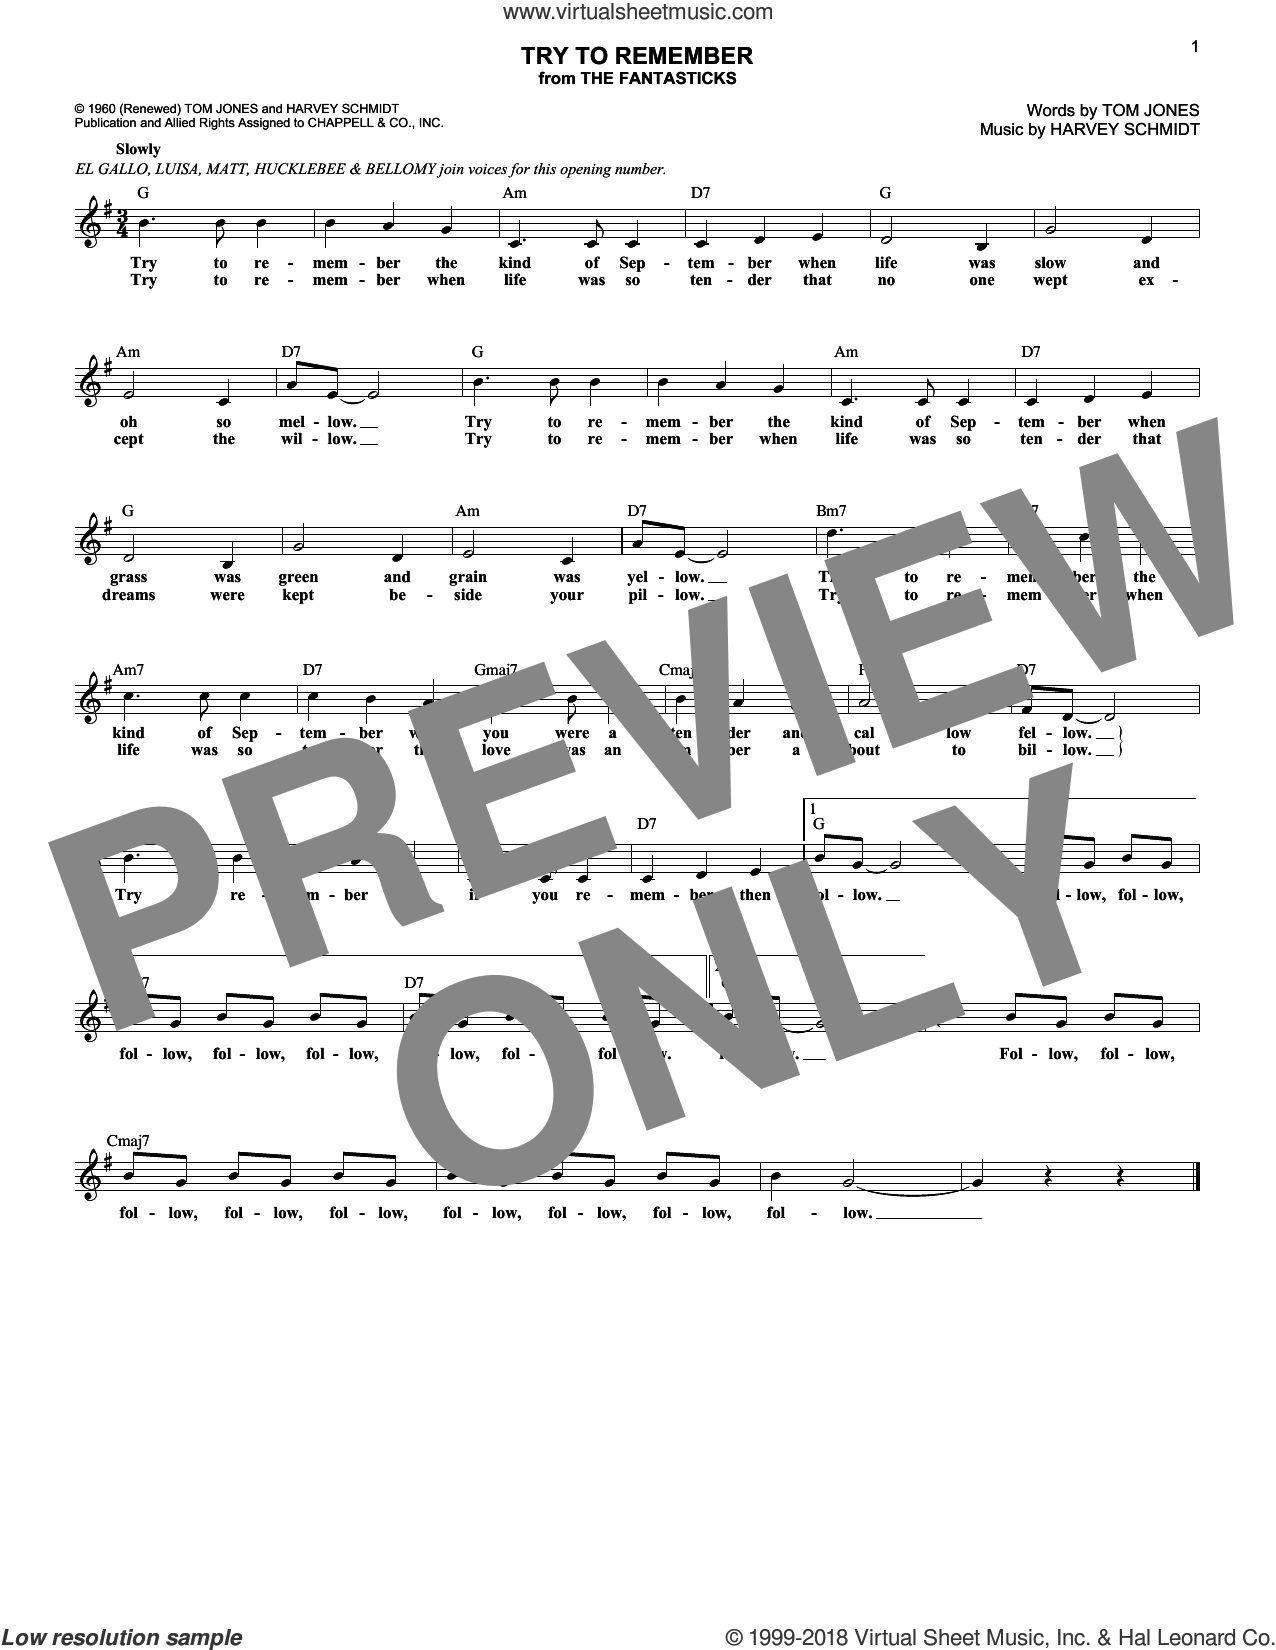 Try To Remember (from The Fantasticks) sheet music for voice and other instruments (fake book) by Tom Jones and Harvey Schmidt, intermediate skill level